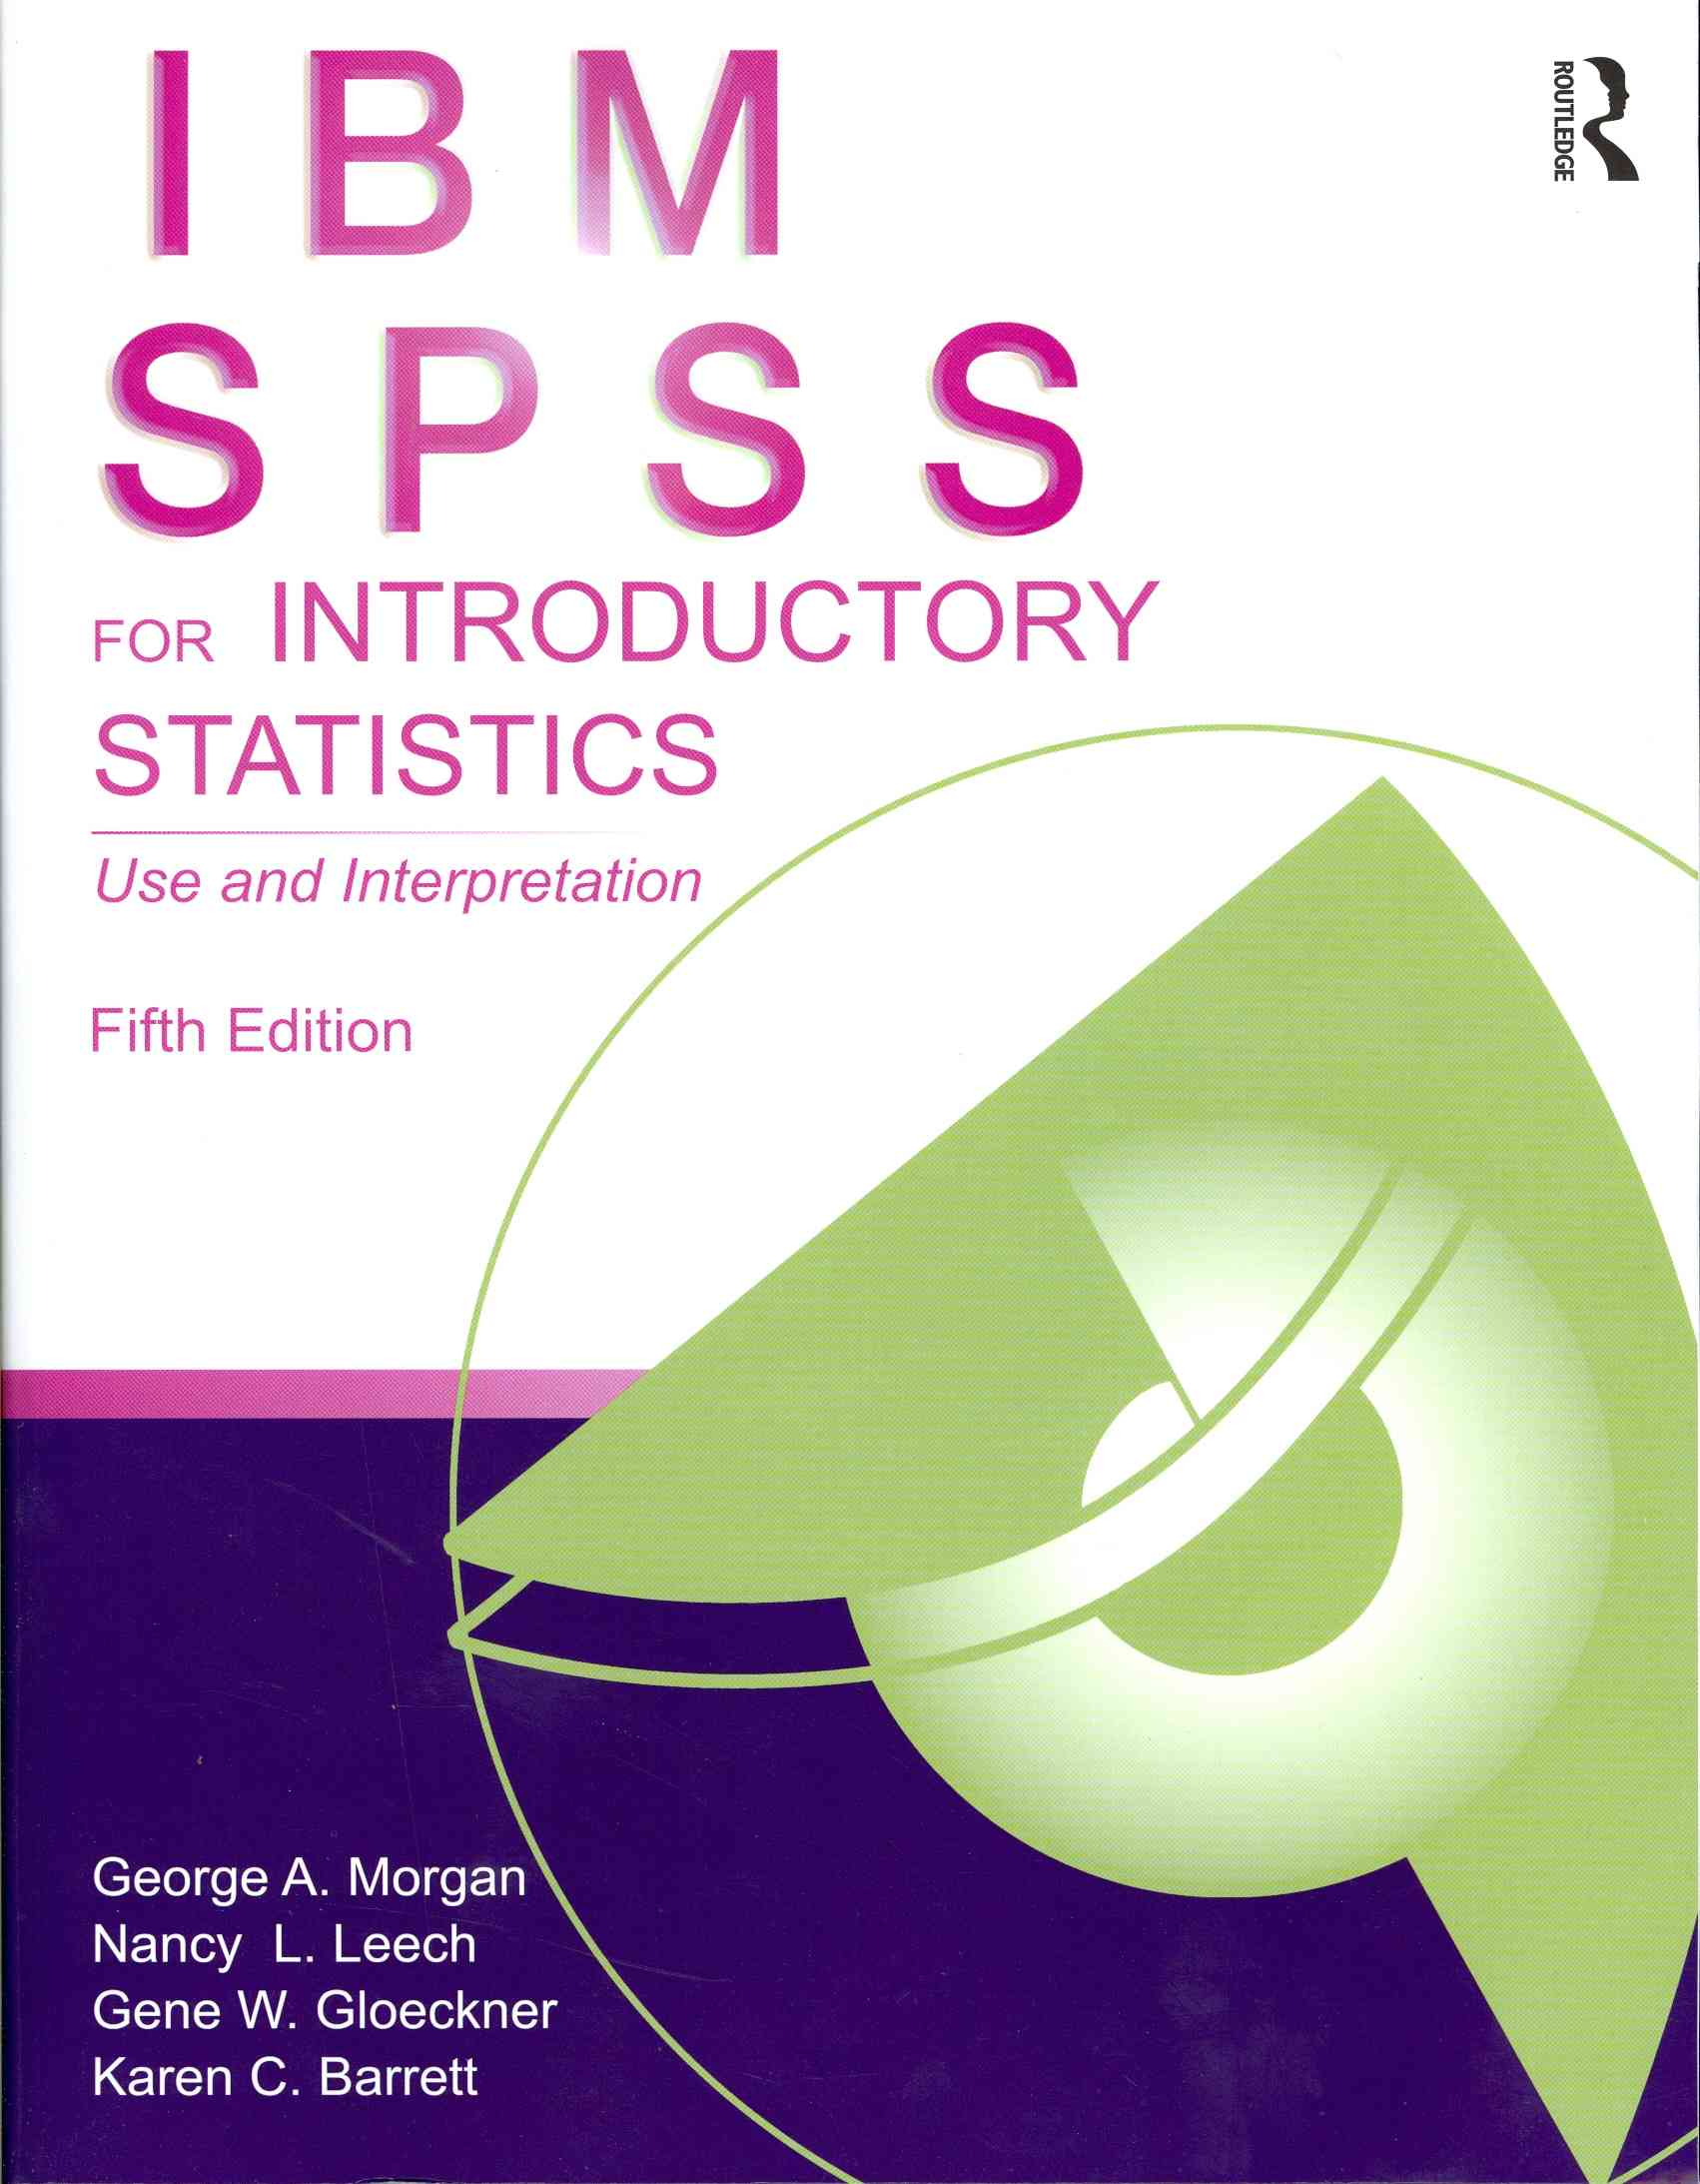 IBM Spss for Introductory Statistics By Morgan, George A./ Leech, Nancy L./ Gloeckner, Gene W./ Barrett, Karen C.